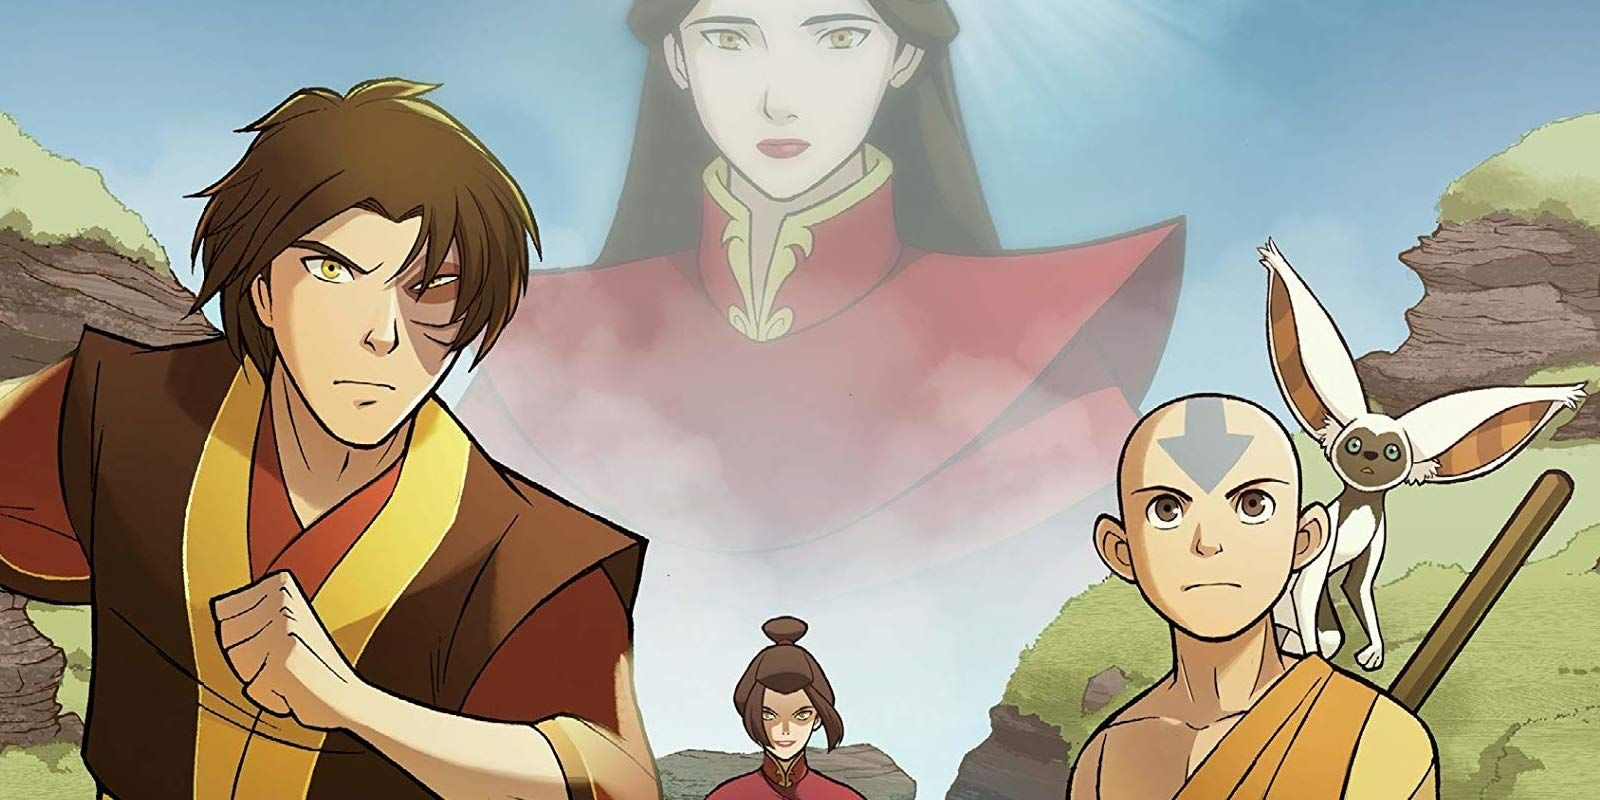 Avatar: The Last Airbender - The Search Deserves an Animated Film